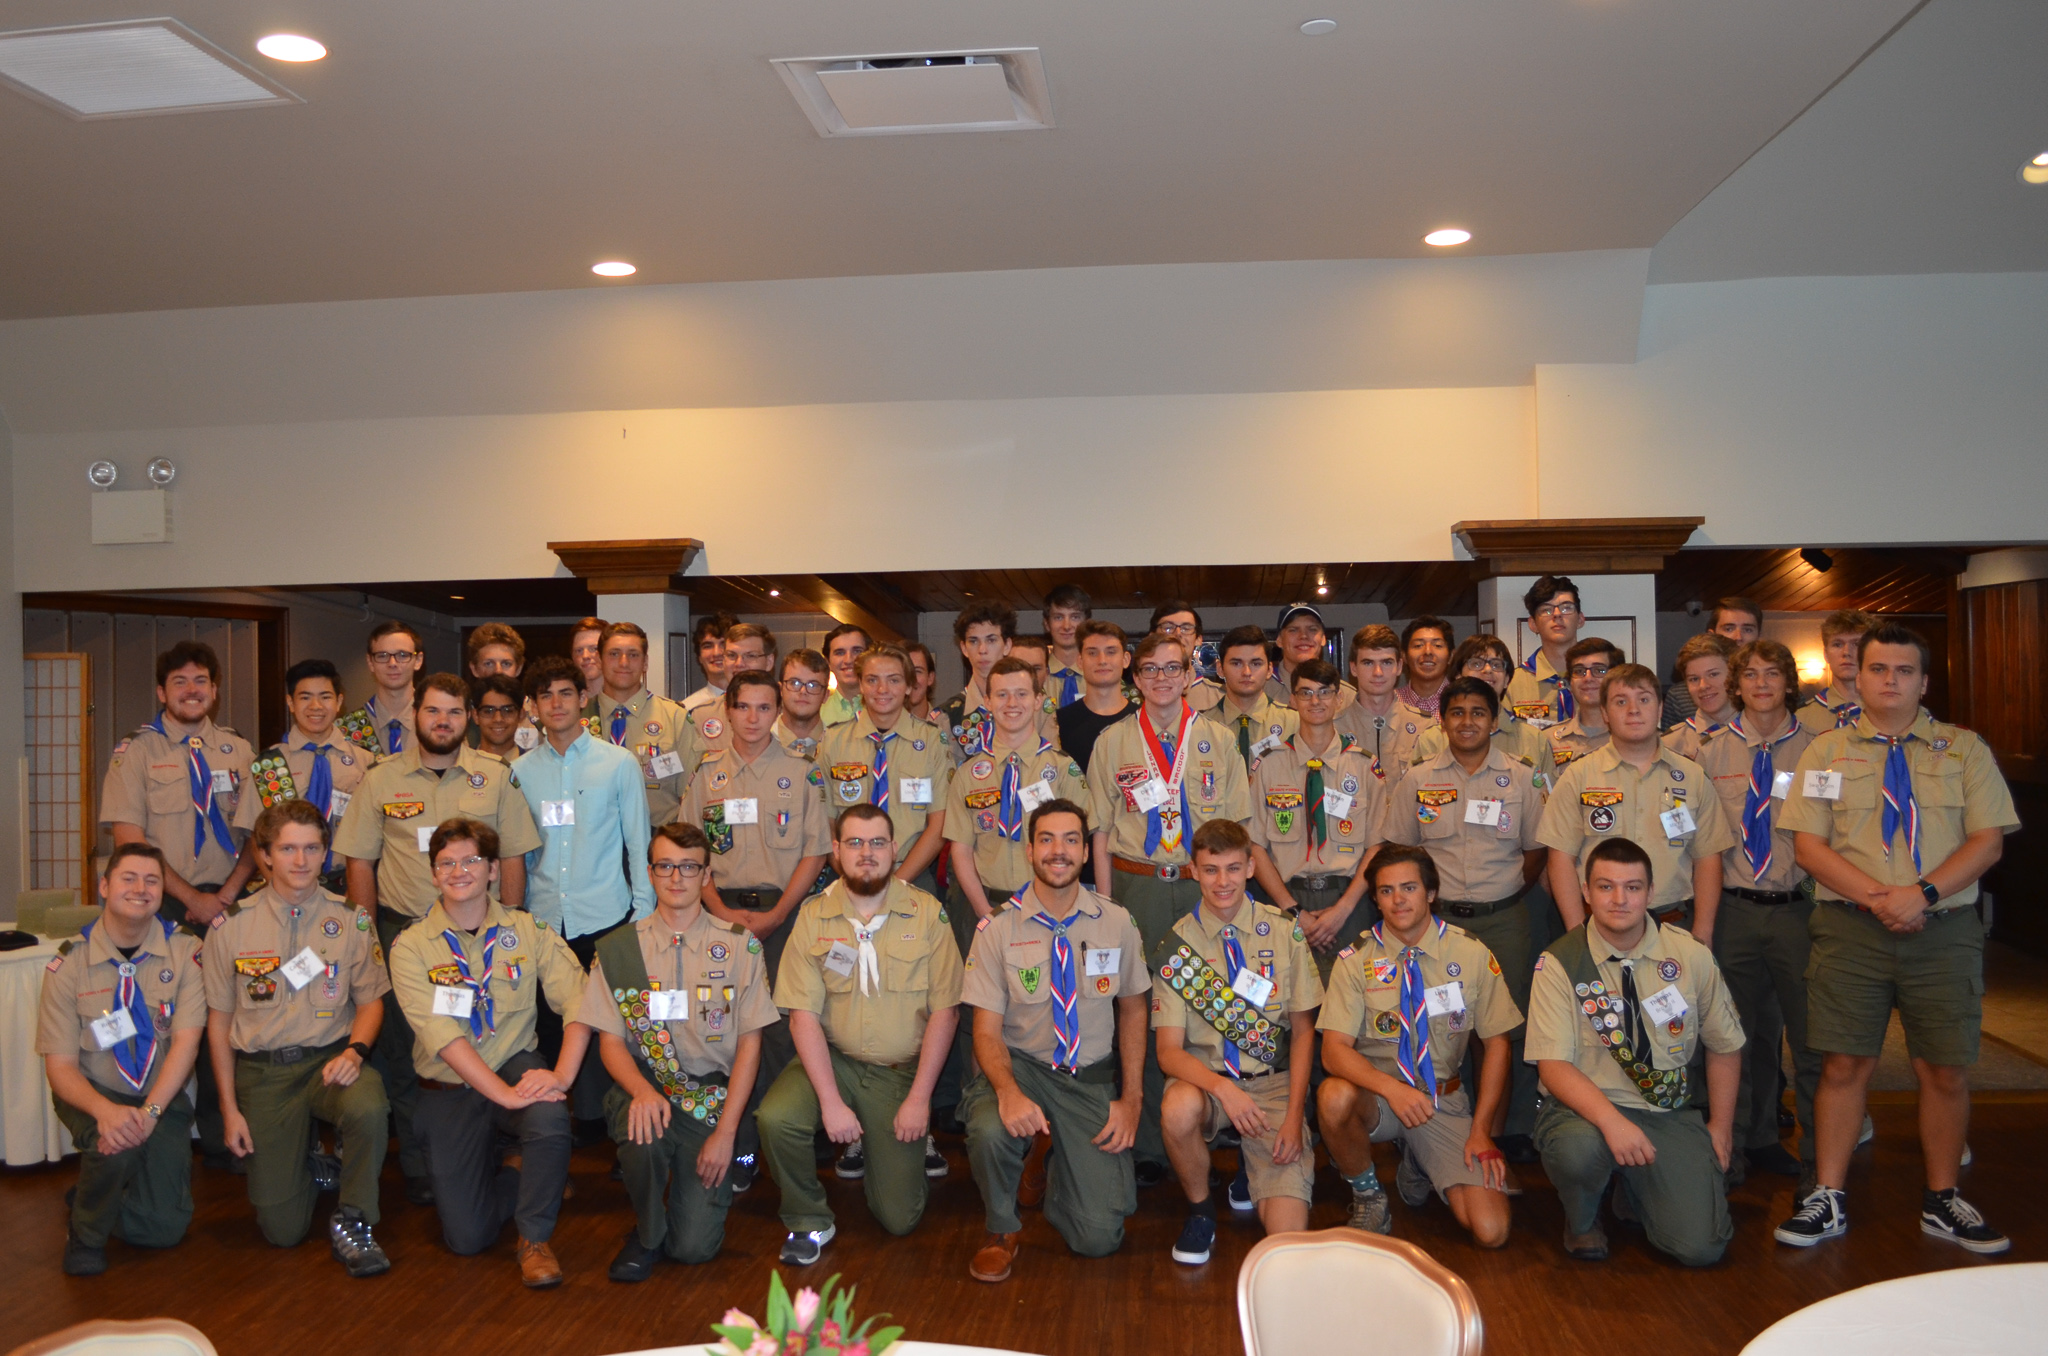 Eagle Scouts from Garden State Council, classes of 2019 and 2020 gather at a recognition dinner August 1, 2021